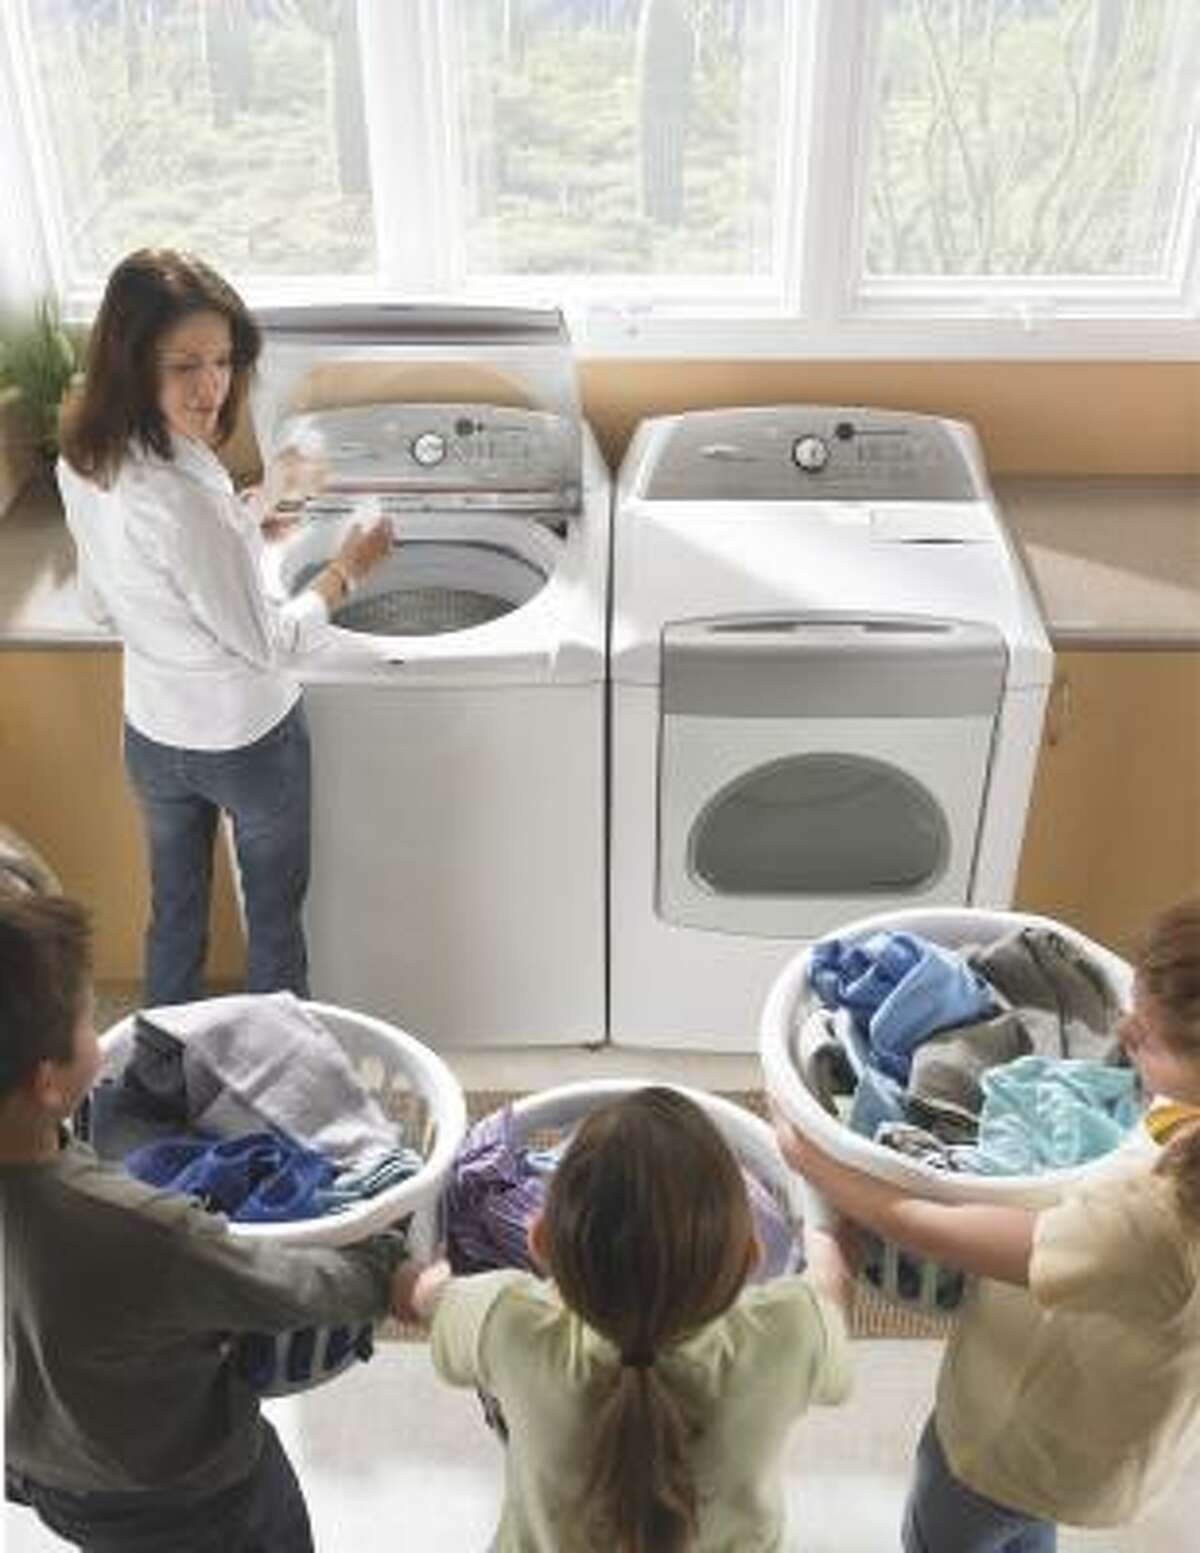 WASH DAY: This Cabrio model washes 4.5 cubic feet of clothes using about half as much water as a standard top-loading washer.